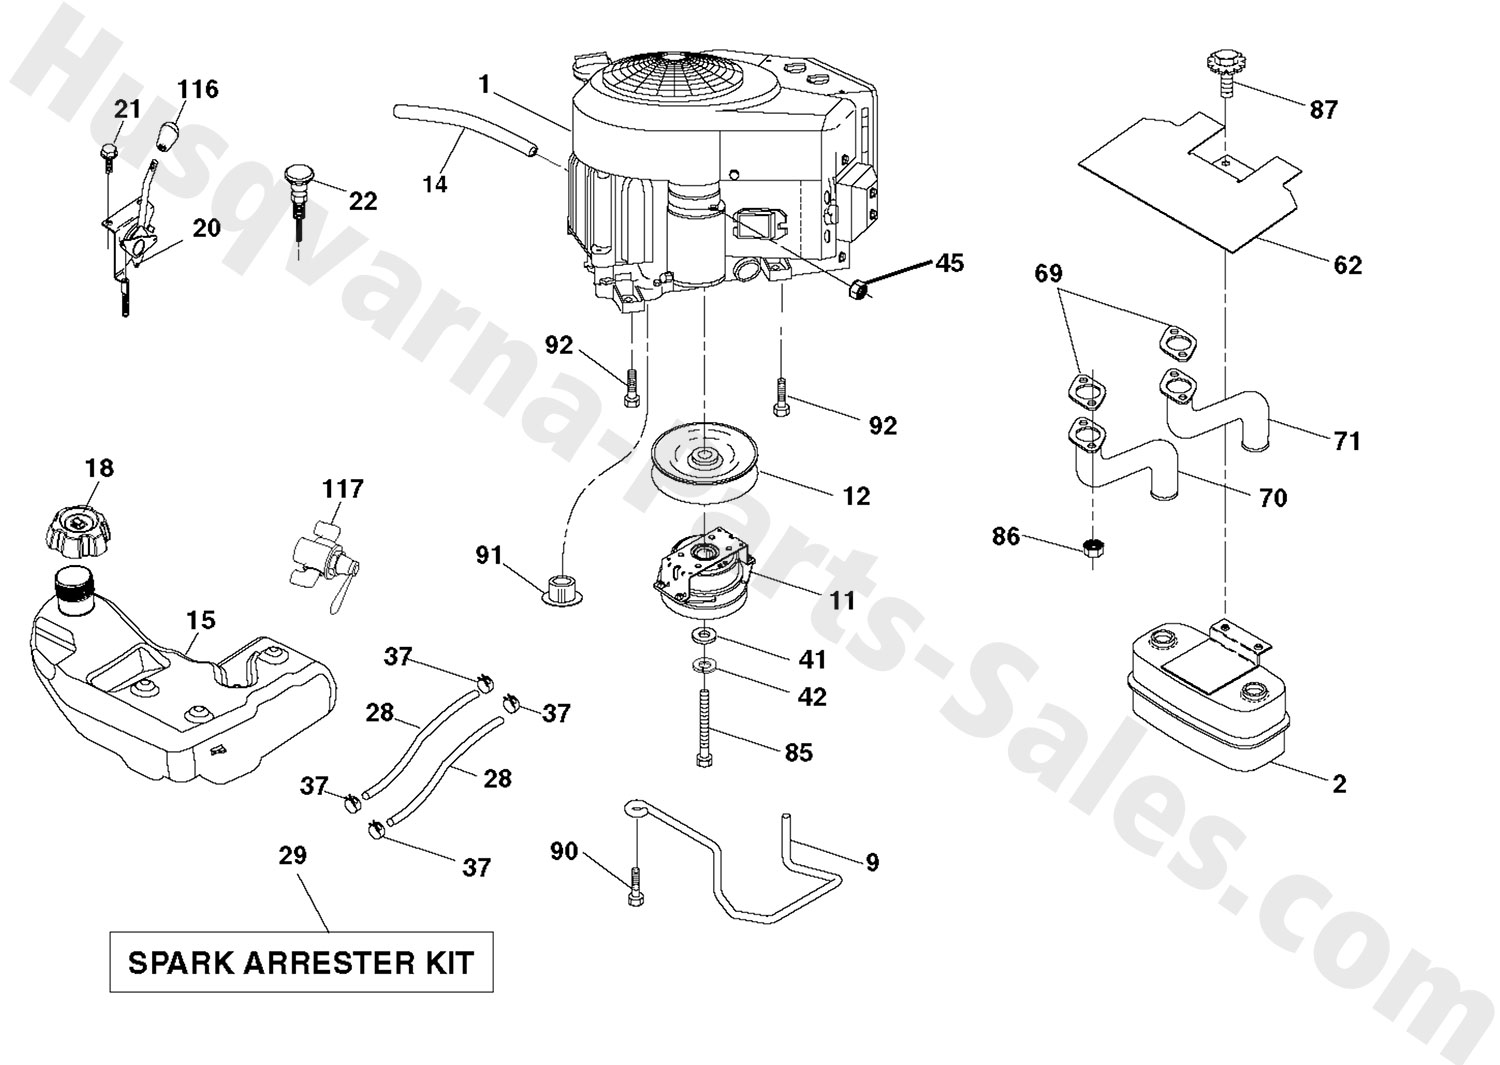 2014 Chevy Ke Controller Wiring Diagram. Chevy. Auto